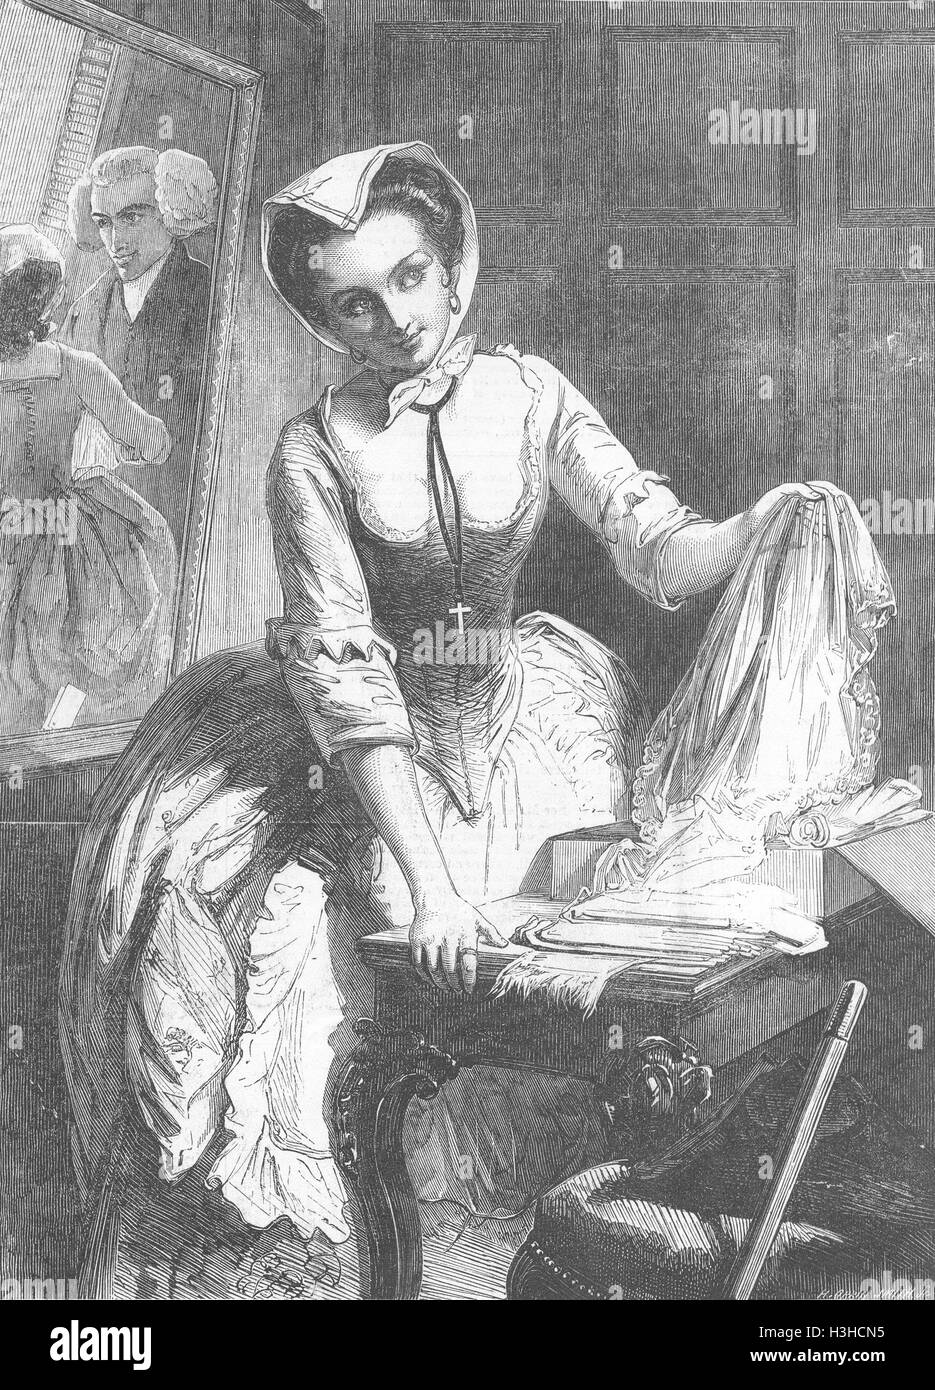 PRETTY LADIES The Grisette 1852. Illustrated London News - Stock Image